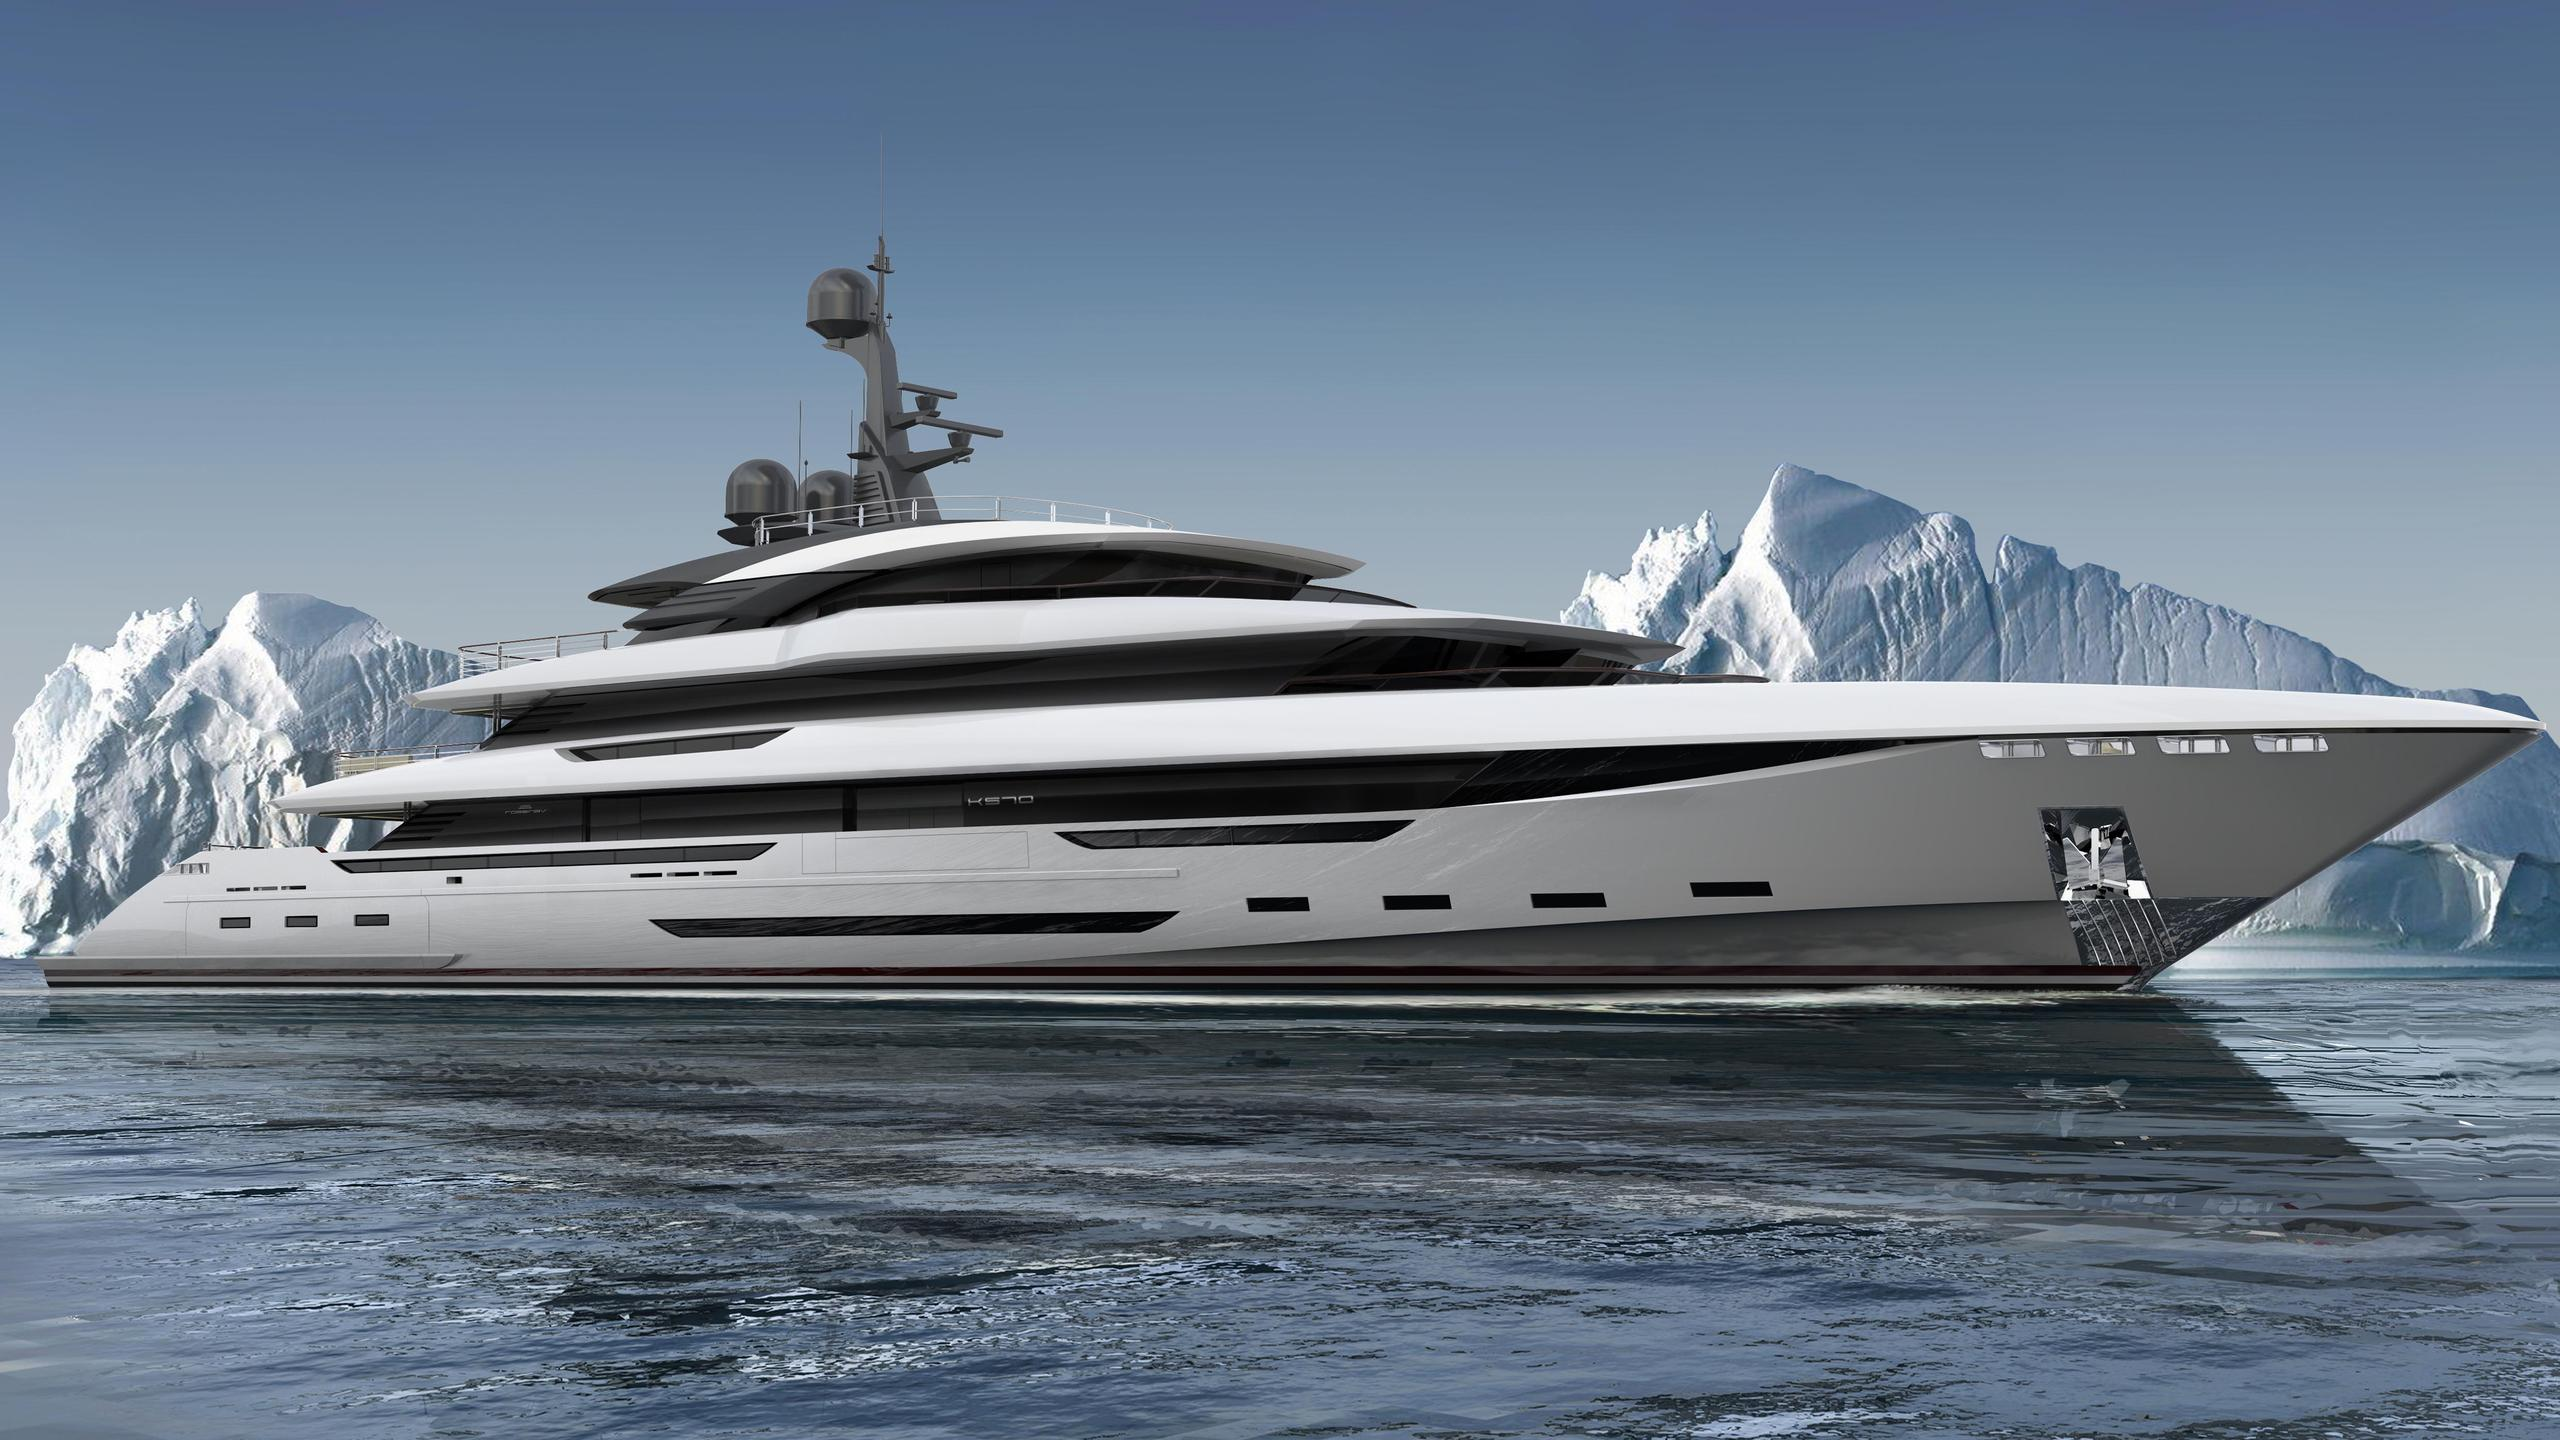 king shark motoryacht rossinavi 2020 70m rendering